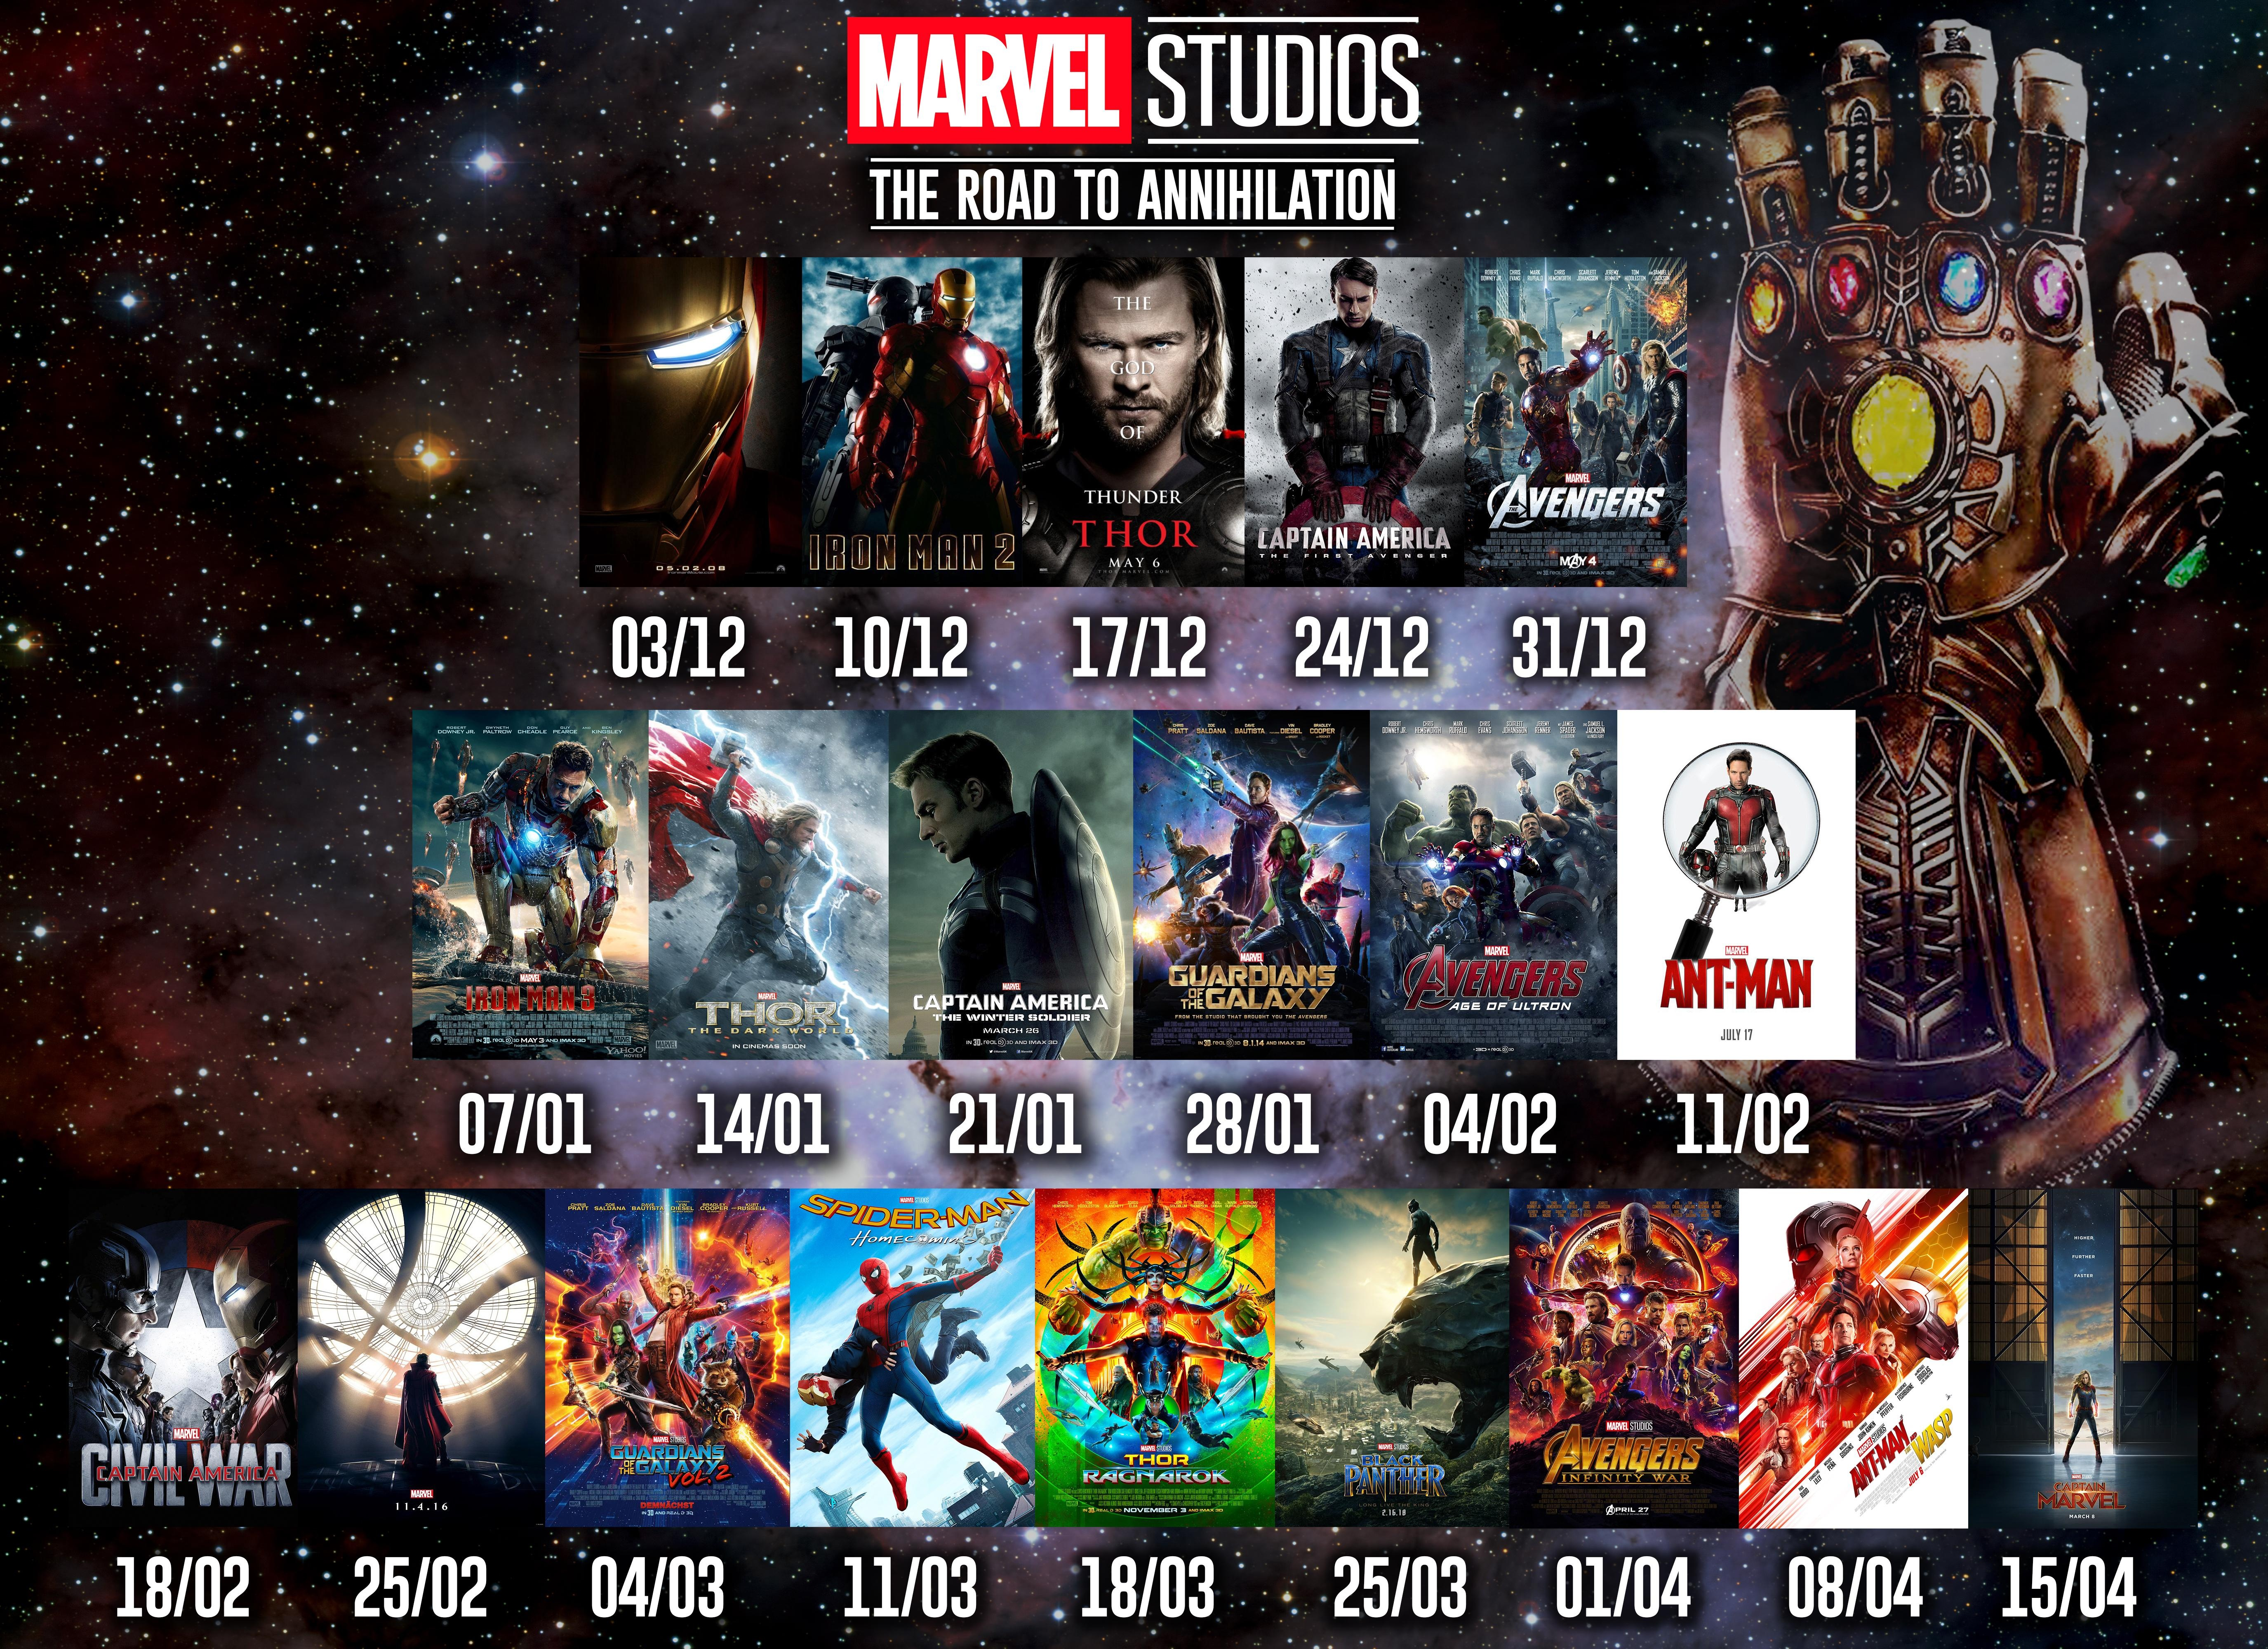 what is the difference between disney's marvel and the former marvel